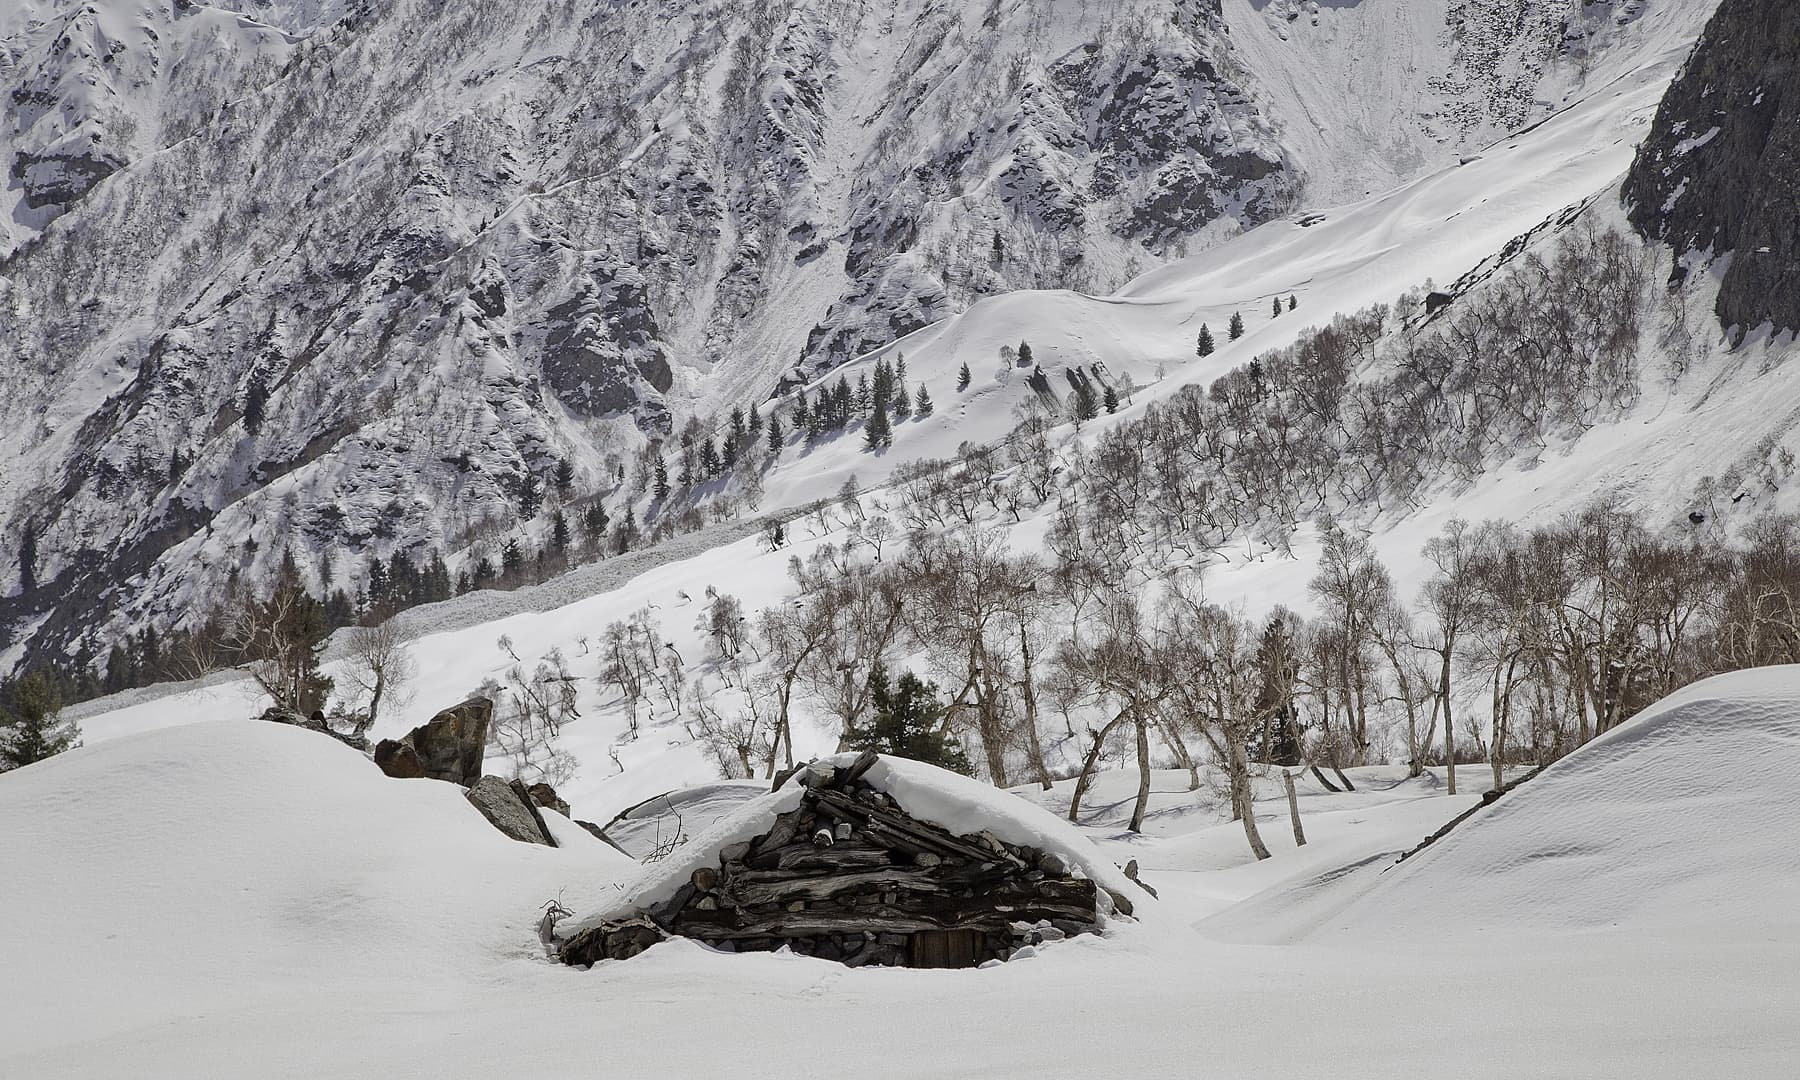 Naltar in winter. — Syed Mehdi Bukhari